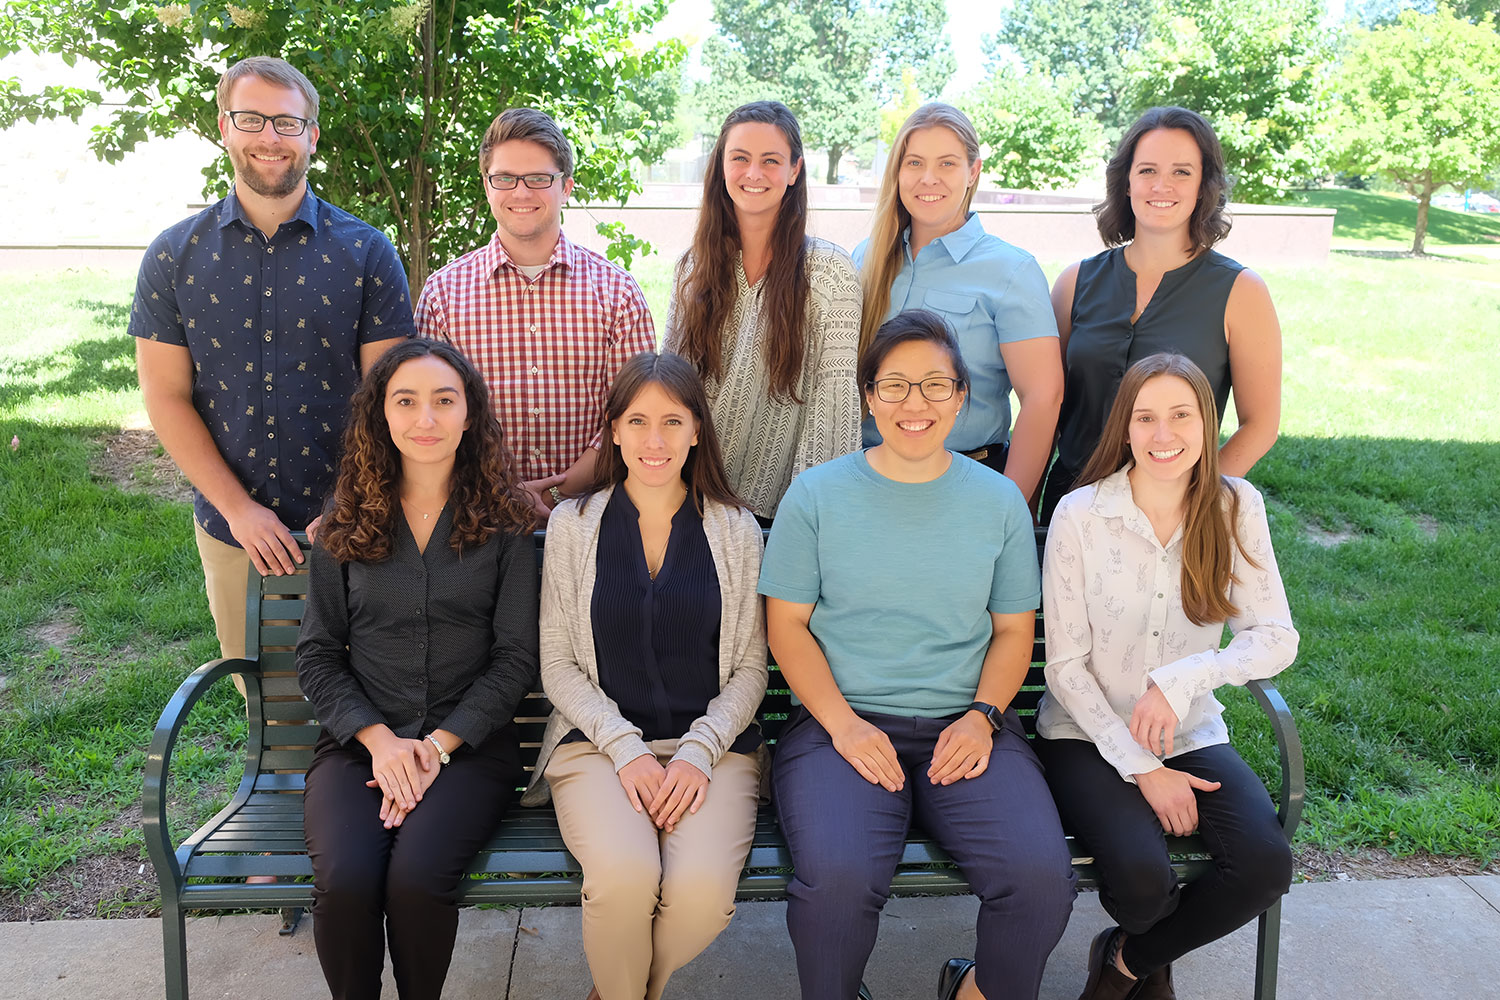 Drs. Jason Banning, Michael Schettler, Tess Rooney, Caitlin Moreno and Katie Mitchell. Front: Drs. Diana Montano Reynoso, Andrea Montano Hernandez, Nalani Yamada and Emily Benfield